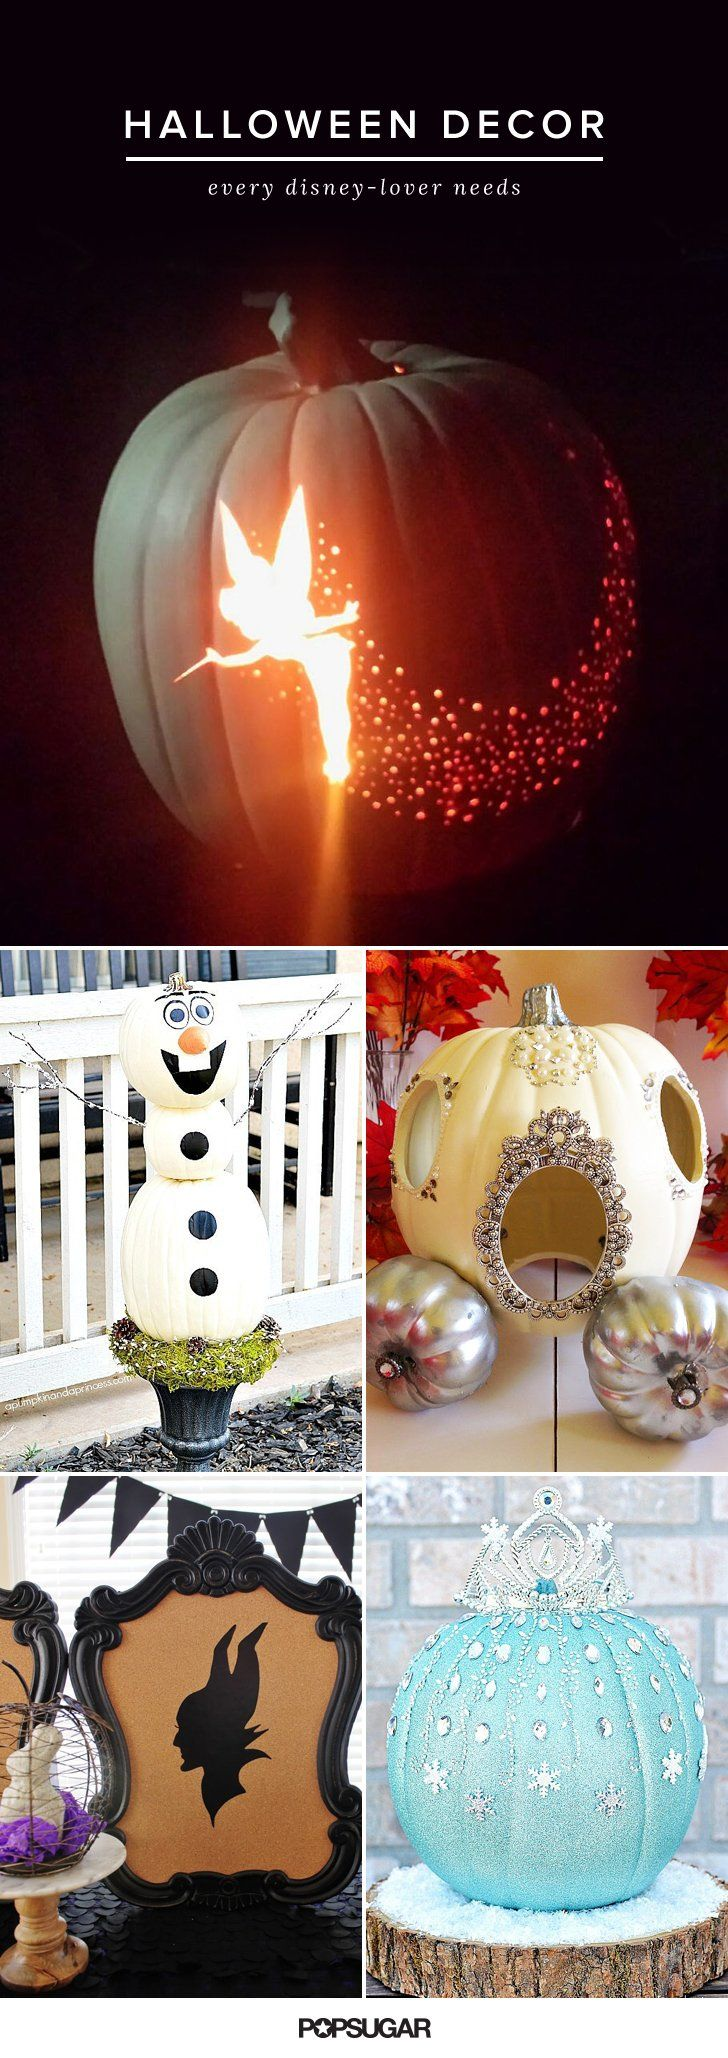 Best 25 Halloween images on Pinterest | Holidays and events